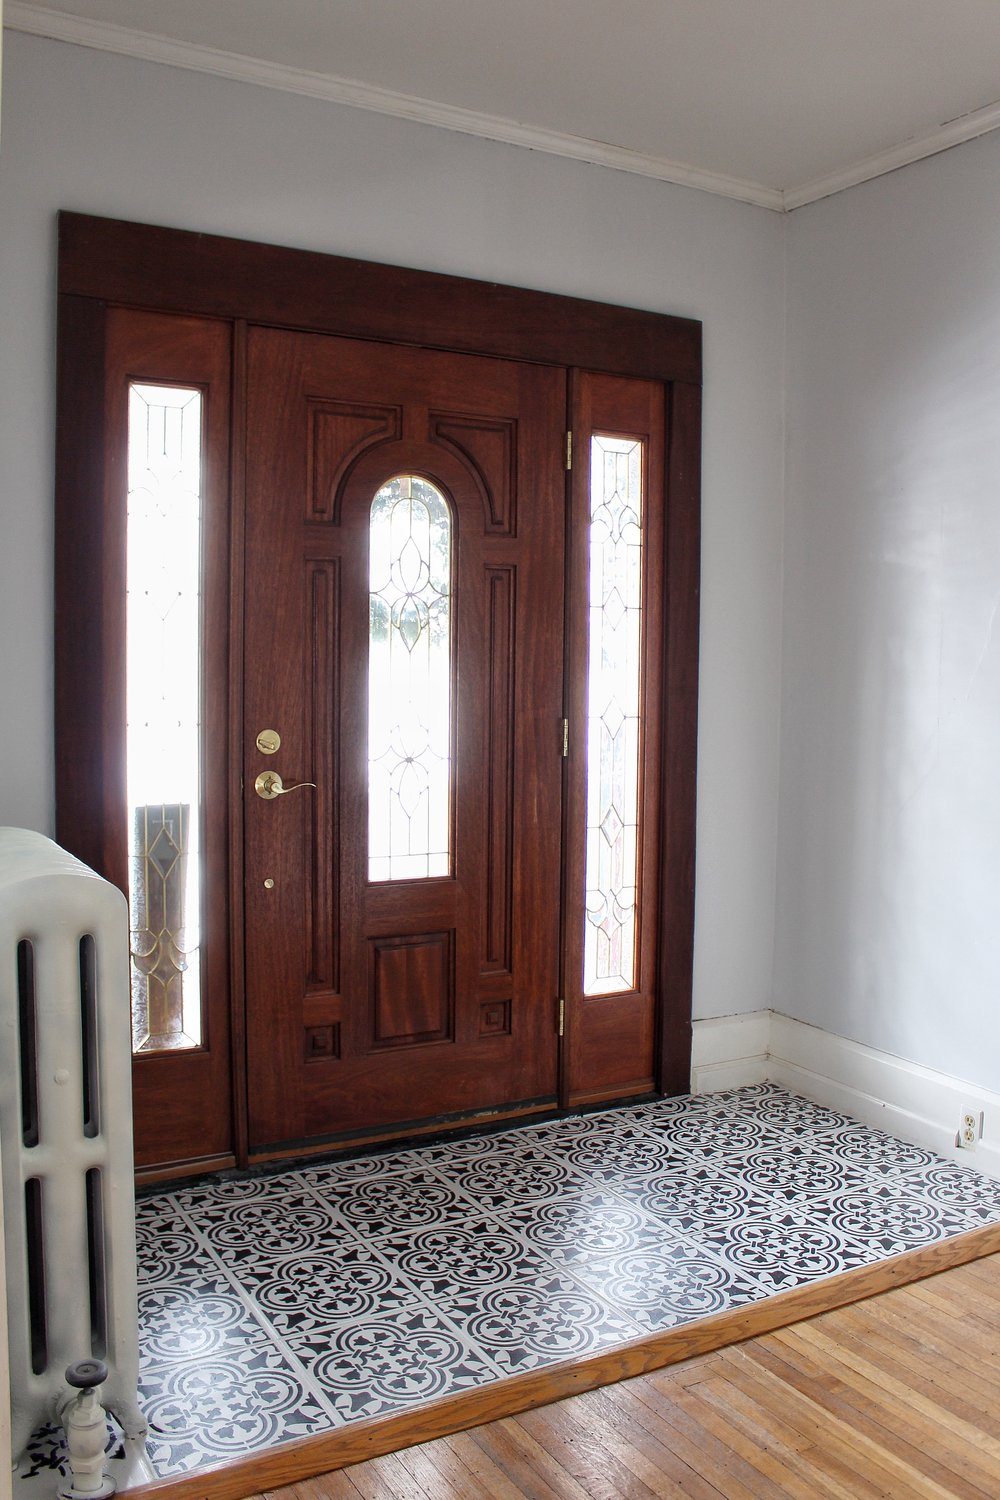 Entry way tiles